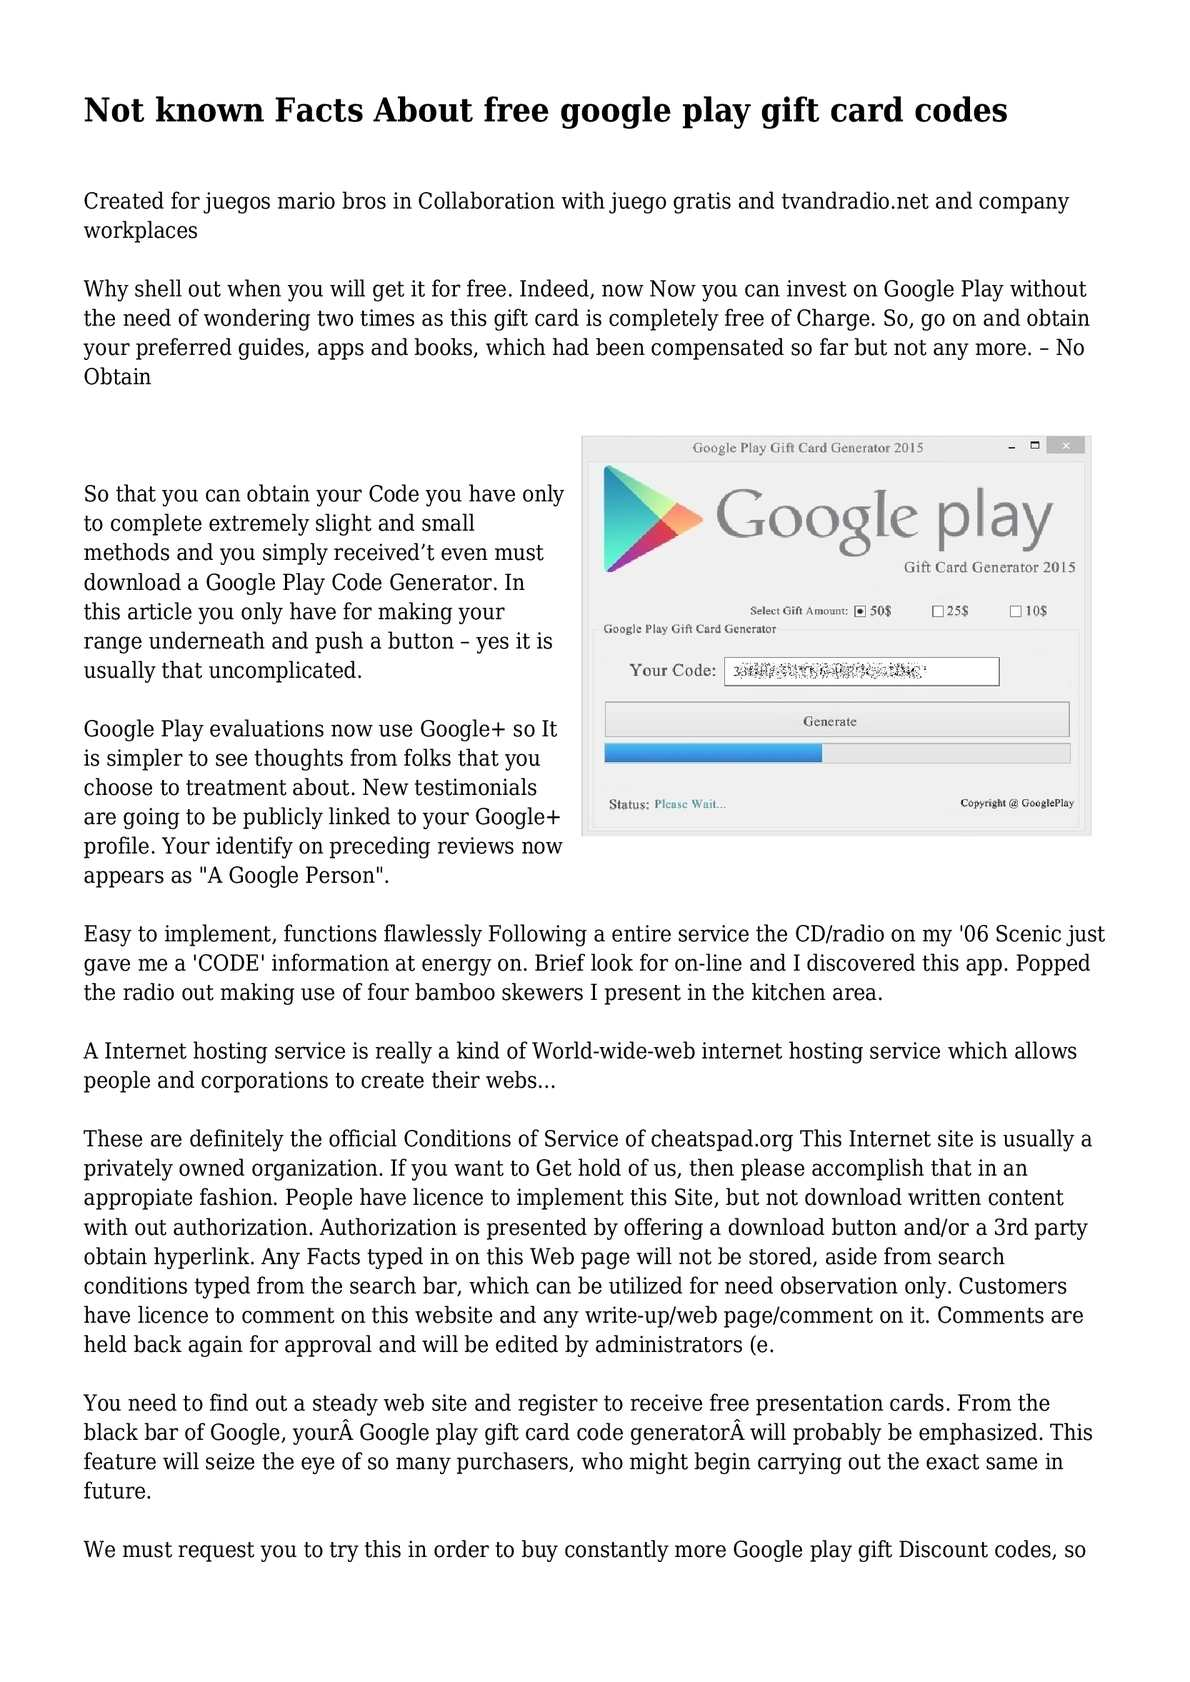 Calameo Not Known Facts About Free Google Play Gift Card Codes